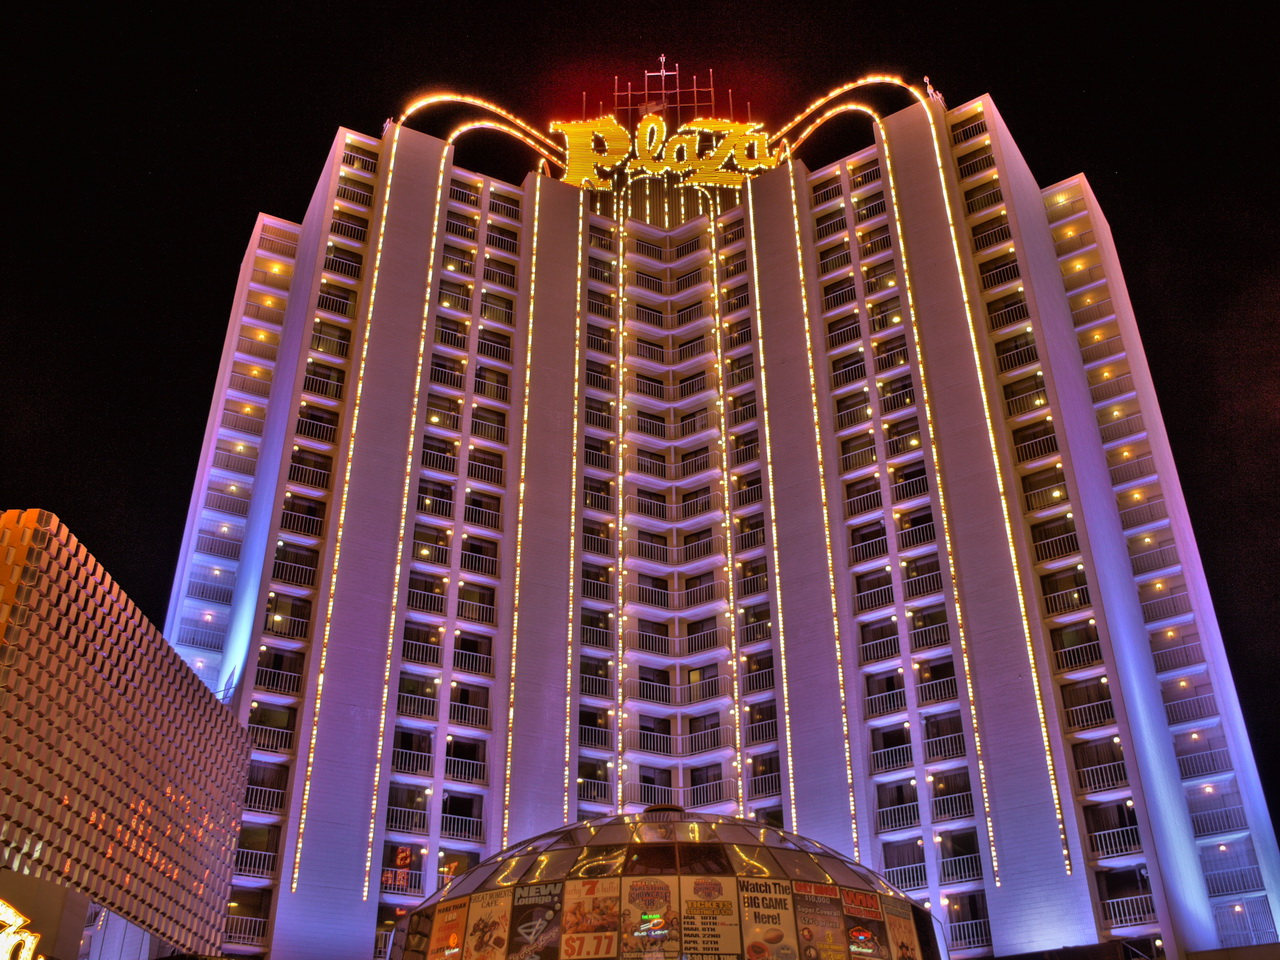 Plaza Hotel and Casino in Downtown Las Vegas.